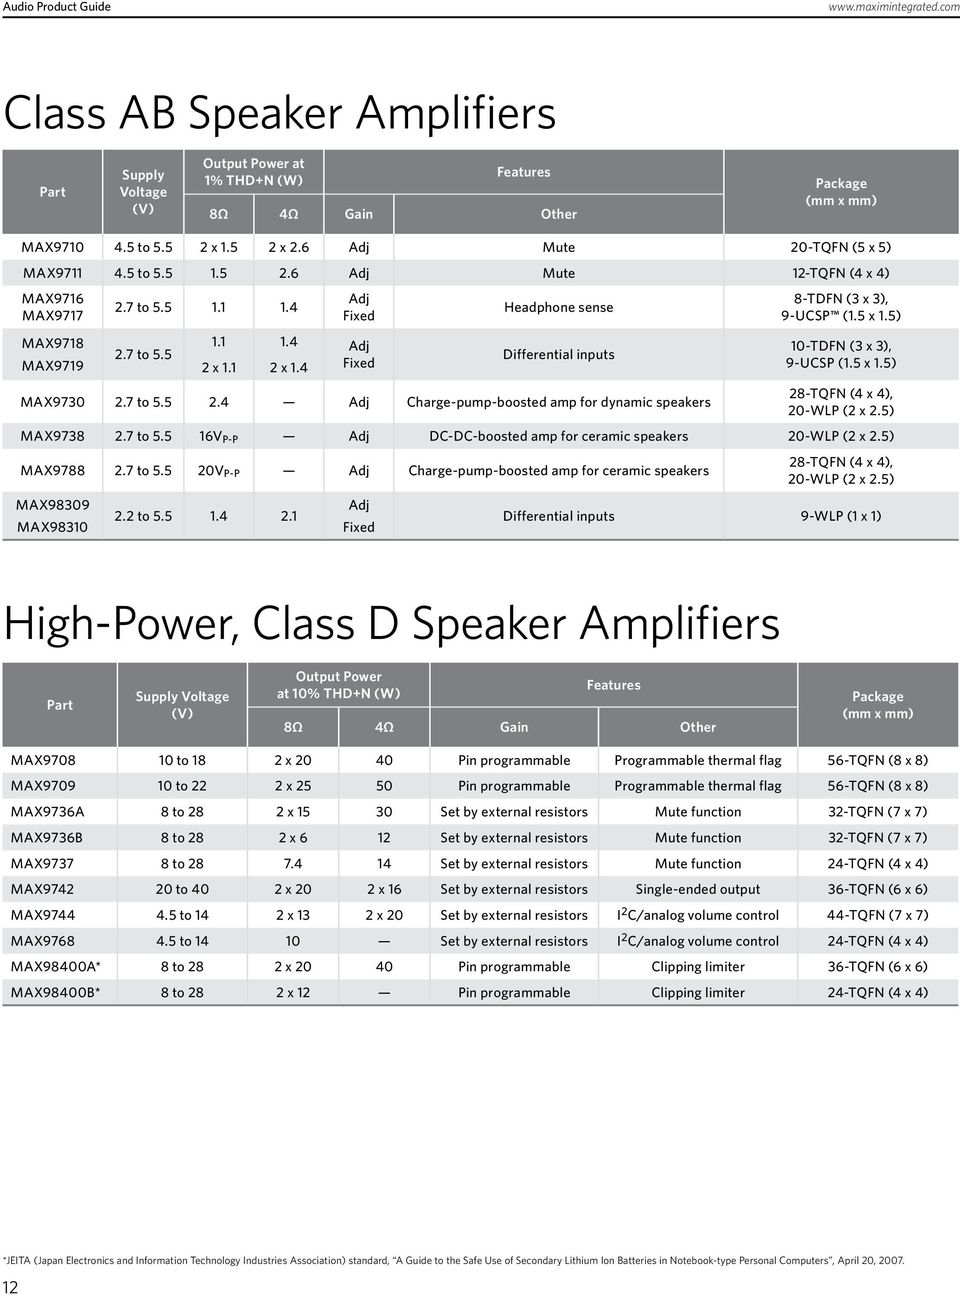 13 Th Edition Audio Product Guide Pdf 1w Stereo Headphone Amplifier Based Tda2822 4 Fixed Sense Differential Inputs Max9730 27 To 55 24 Adj Charge Pump